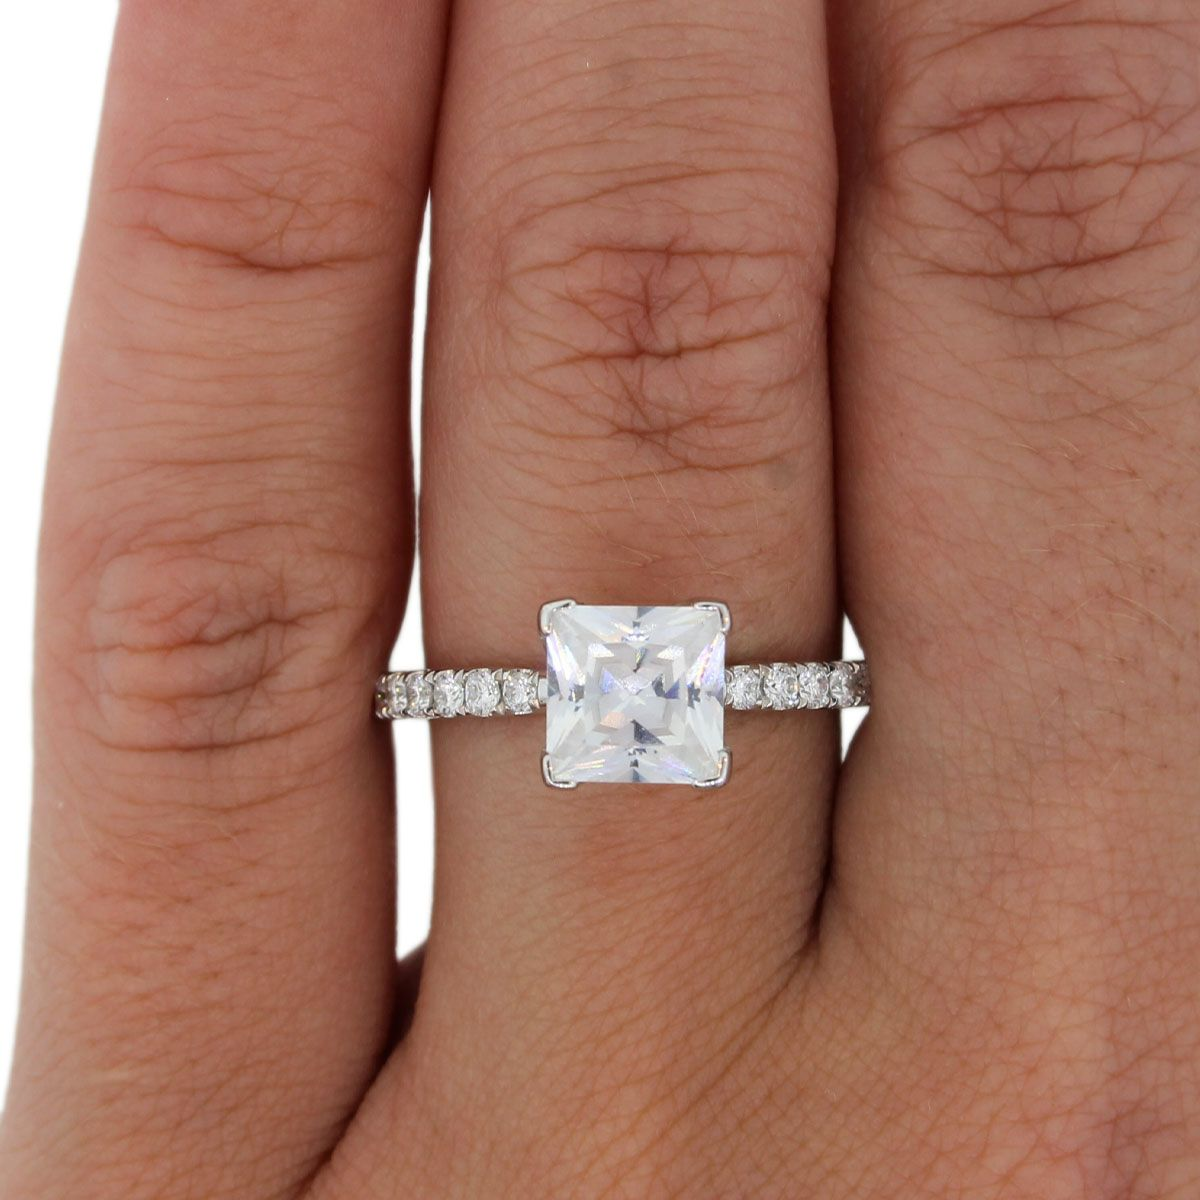 A.Jaffe princess cut diamond engagement rings in white gold